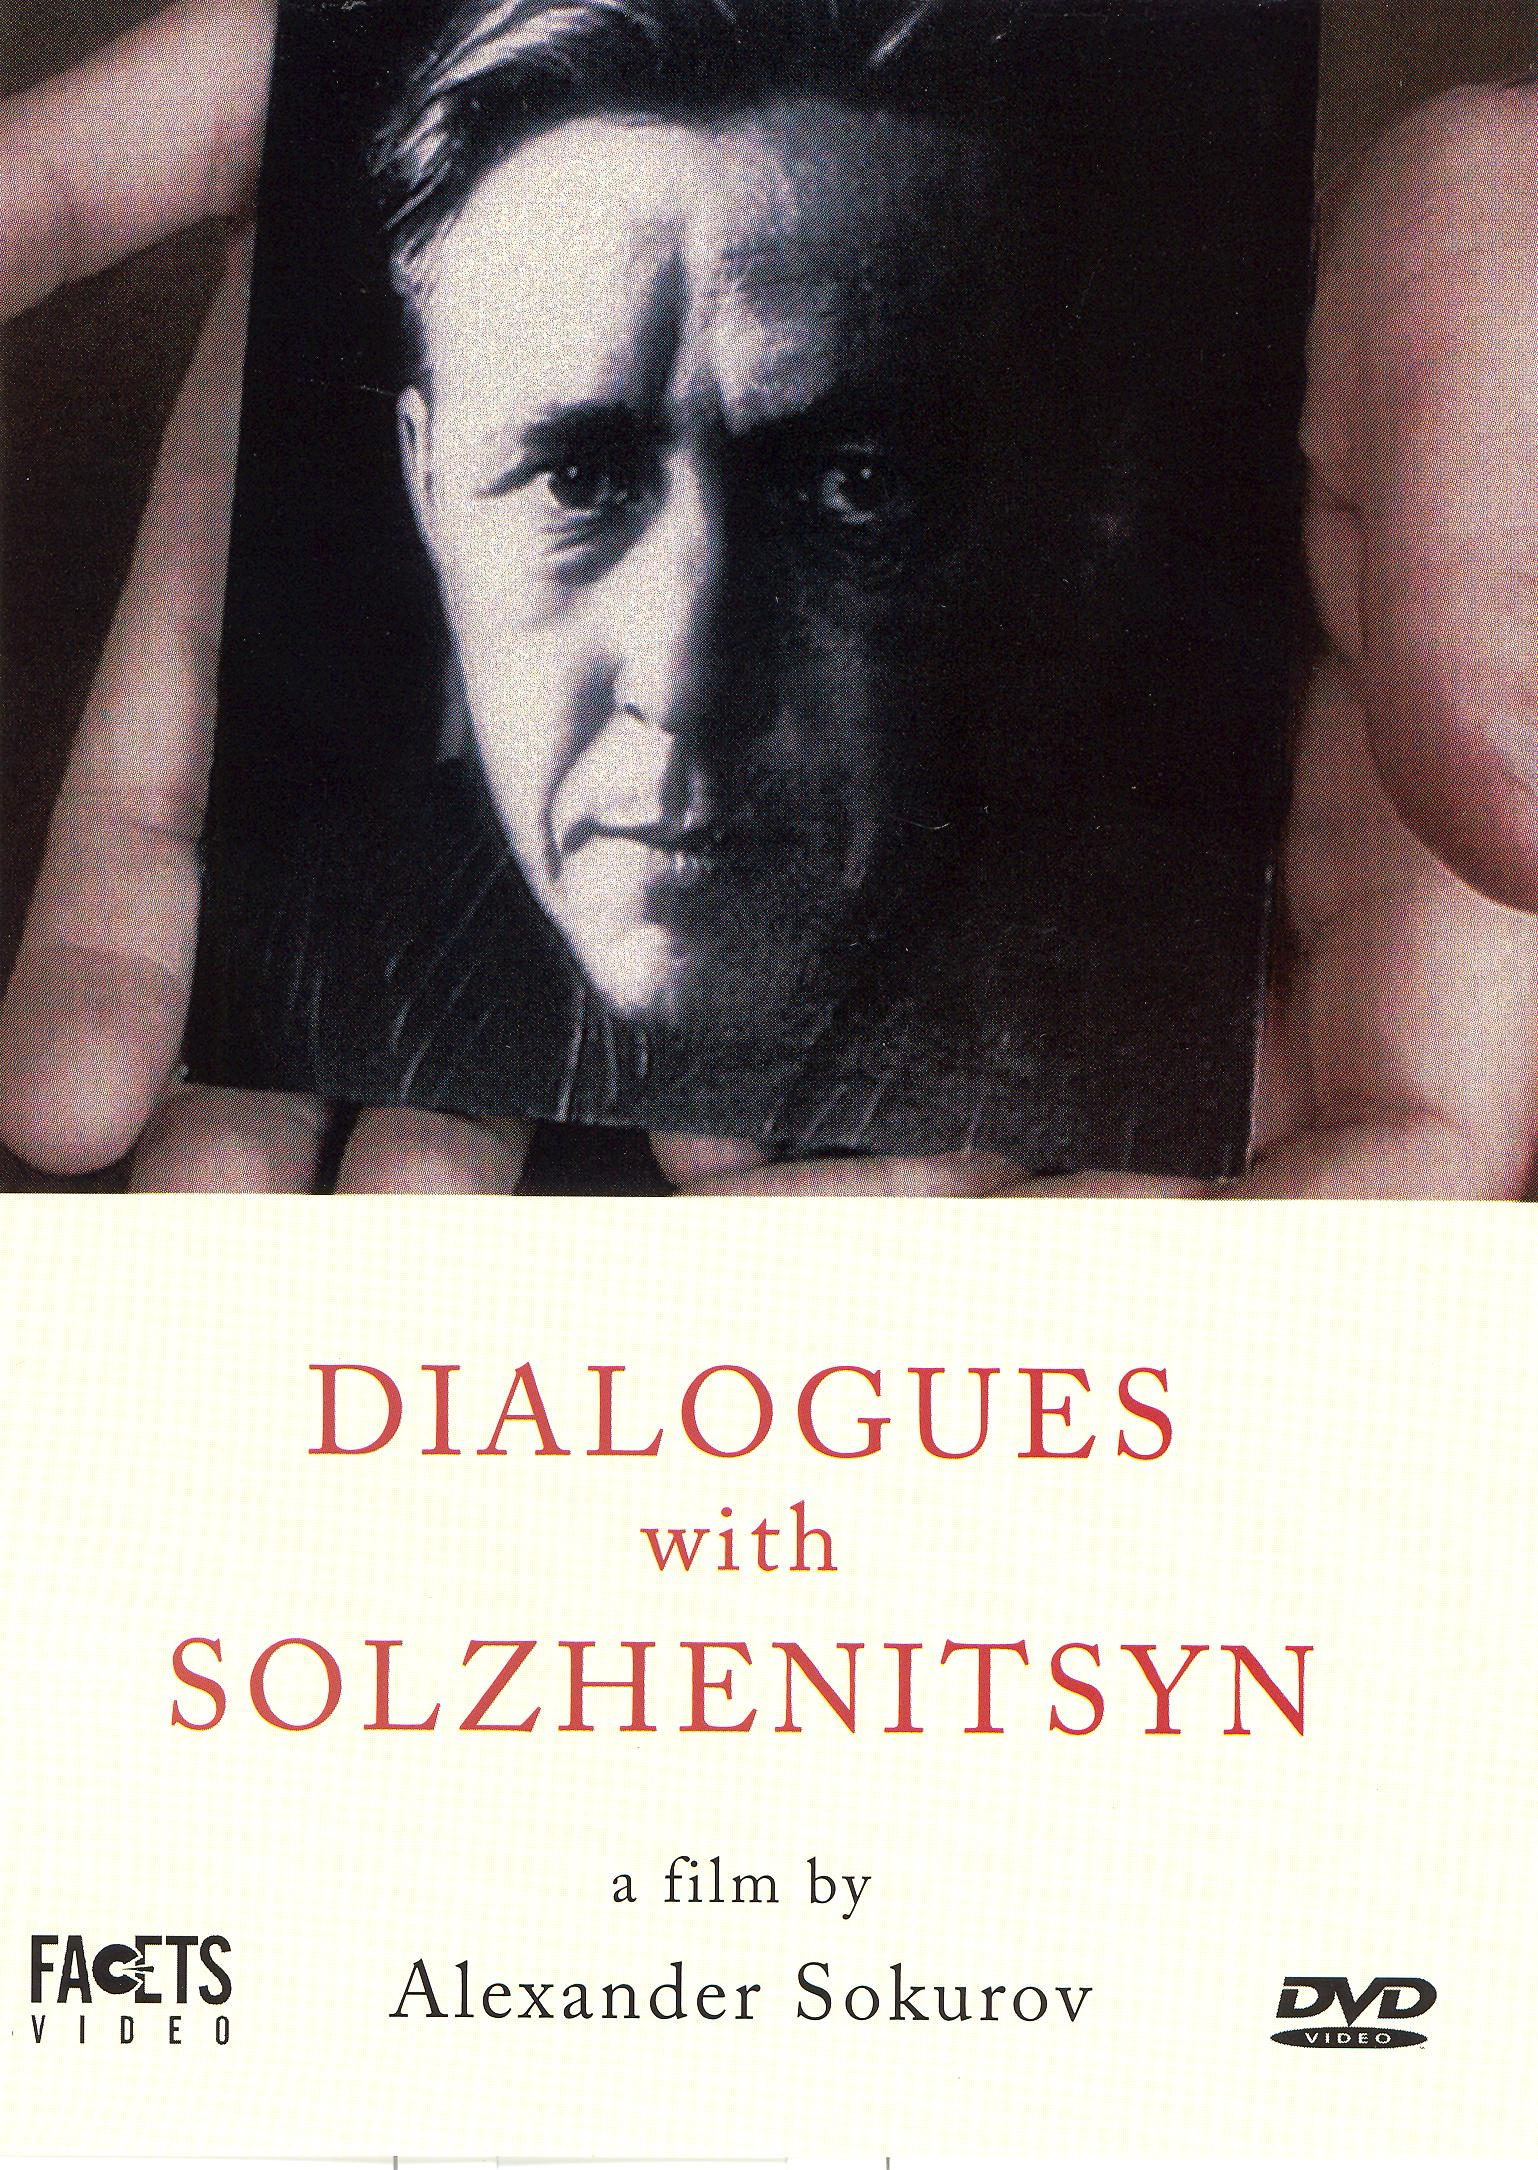 The Dialogues with Solzhenitsyn